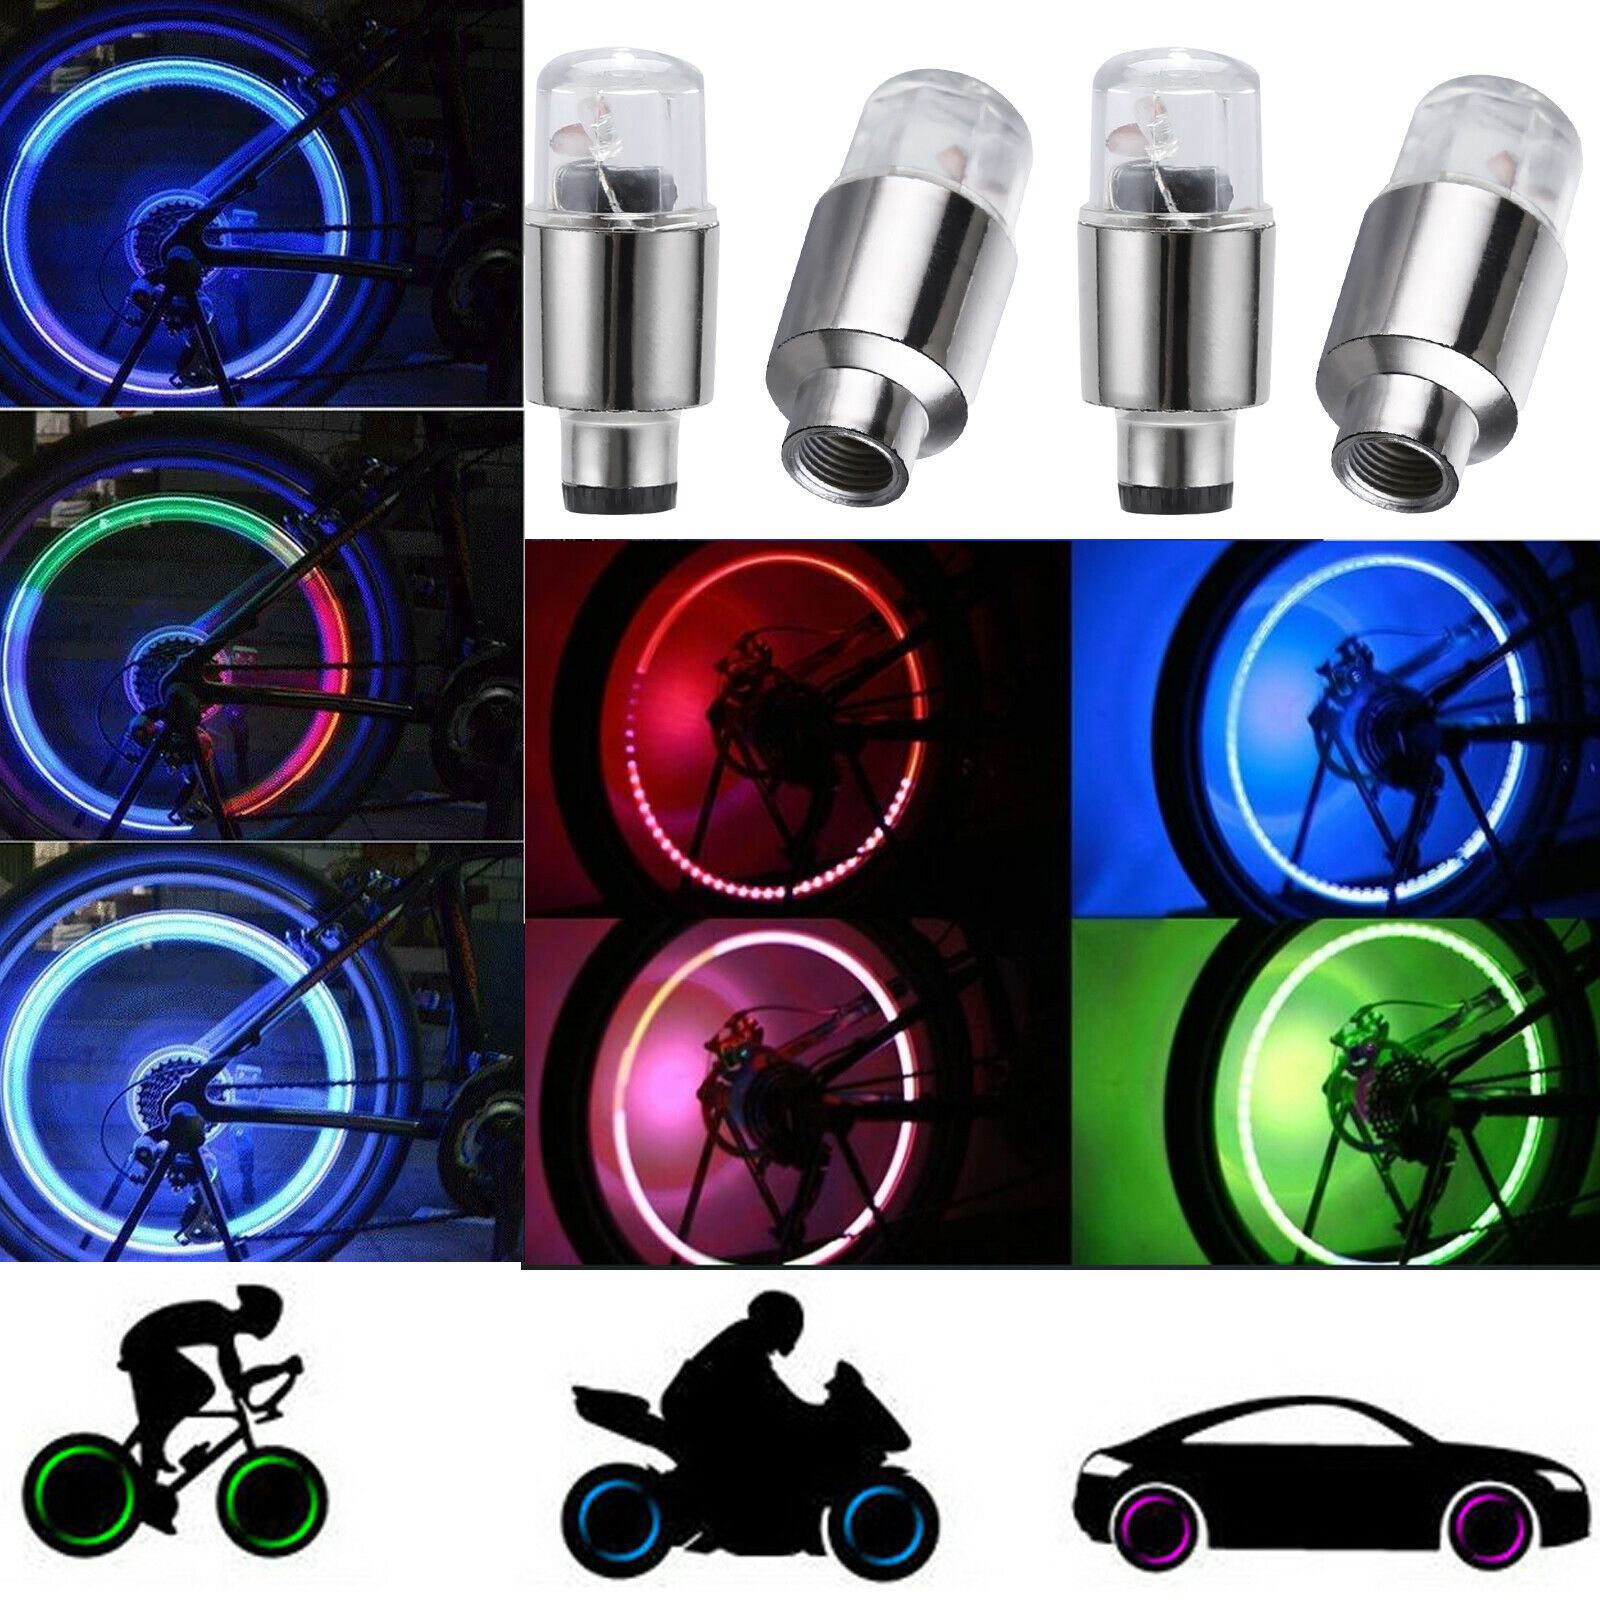 10x LED Car Bike Wheel Tire Tyre Valve Dust Cap Spoke Flash Lights Car Valve Stems Caps Accessories 4 Color Red Blue Green Lamp